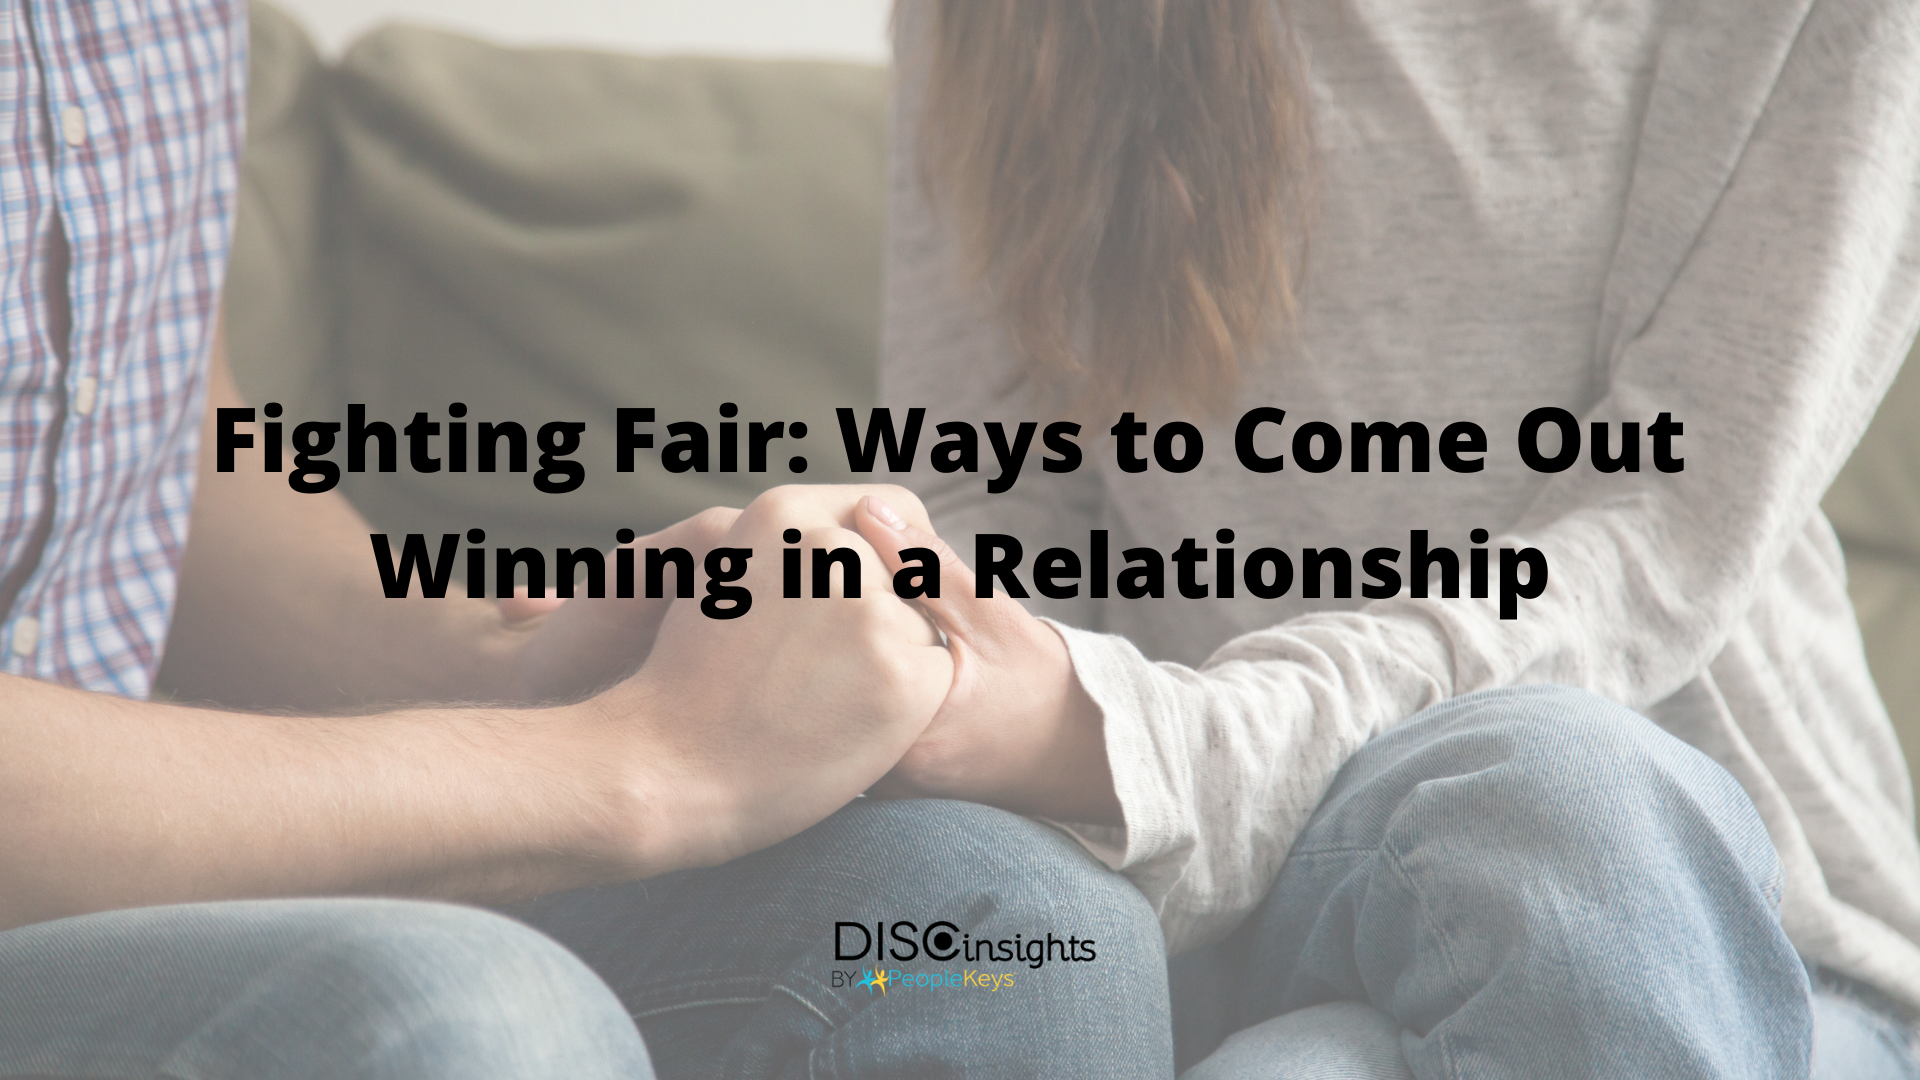 Fighting Fair - Ways to come out winning in a relationship